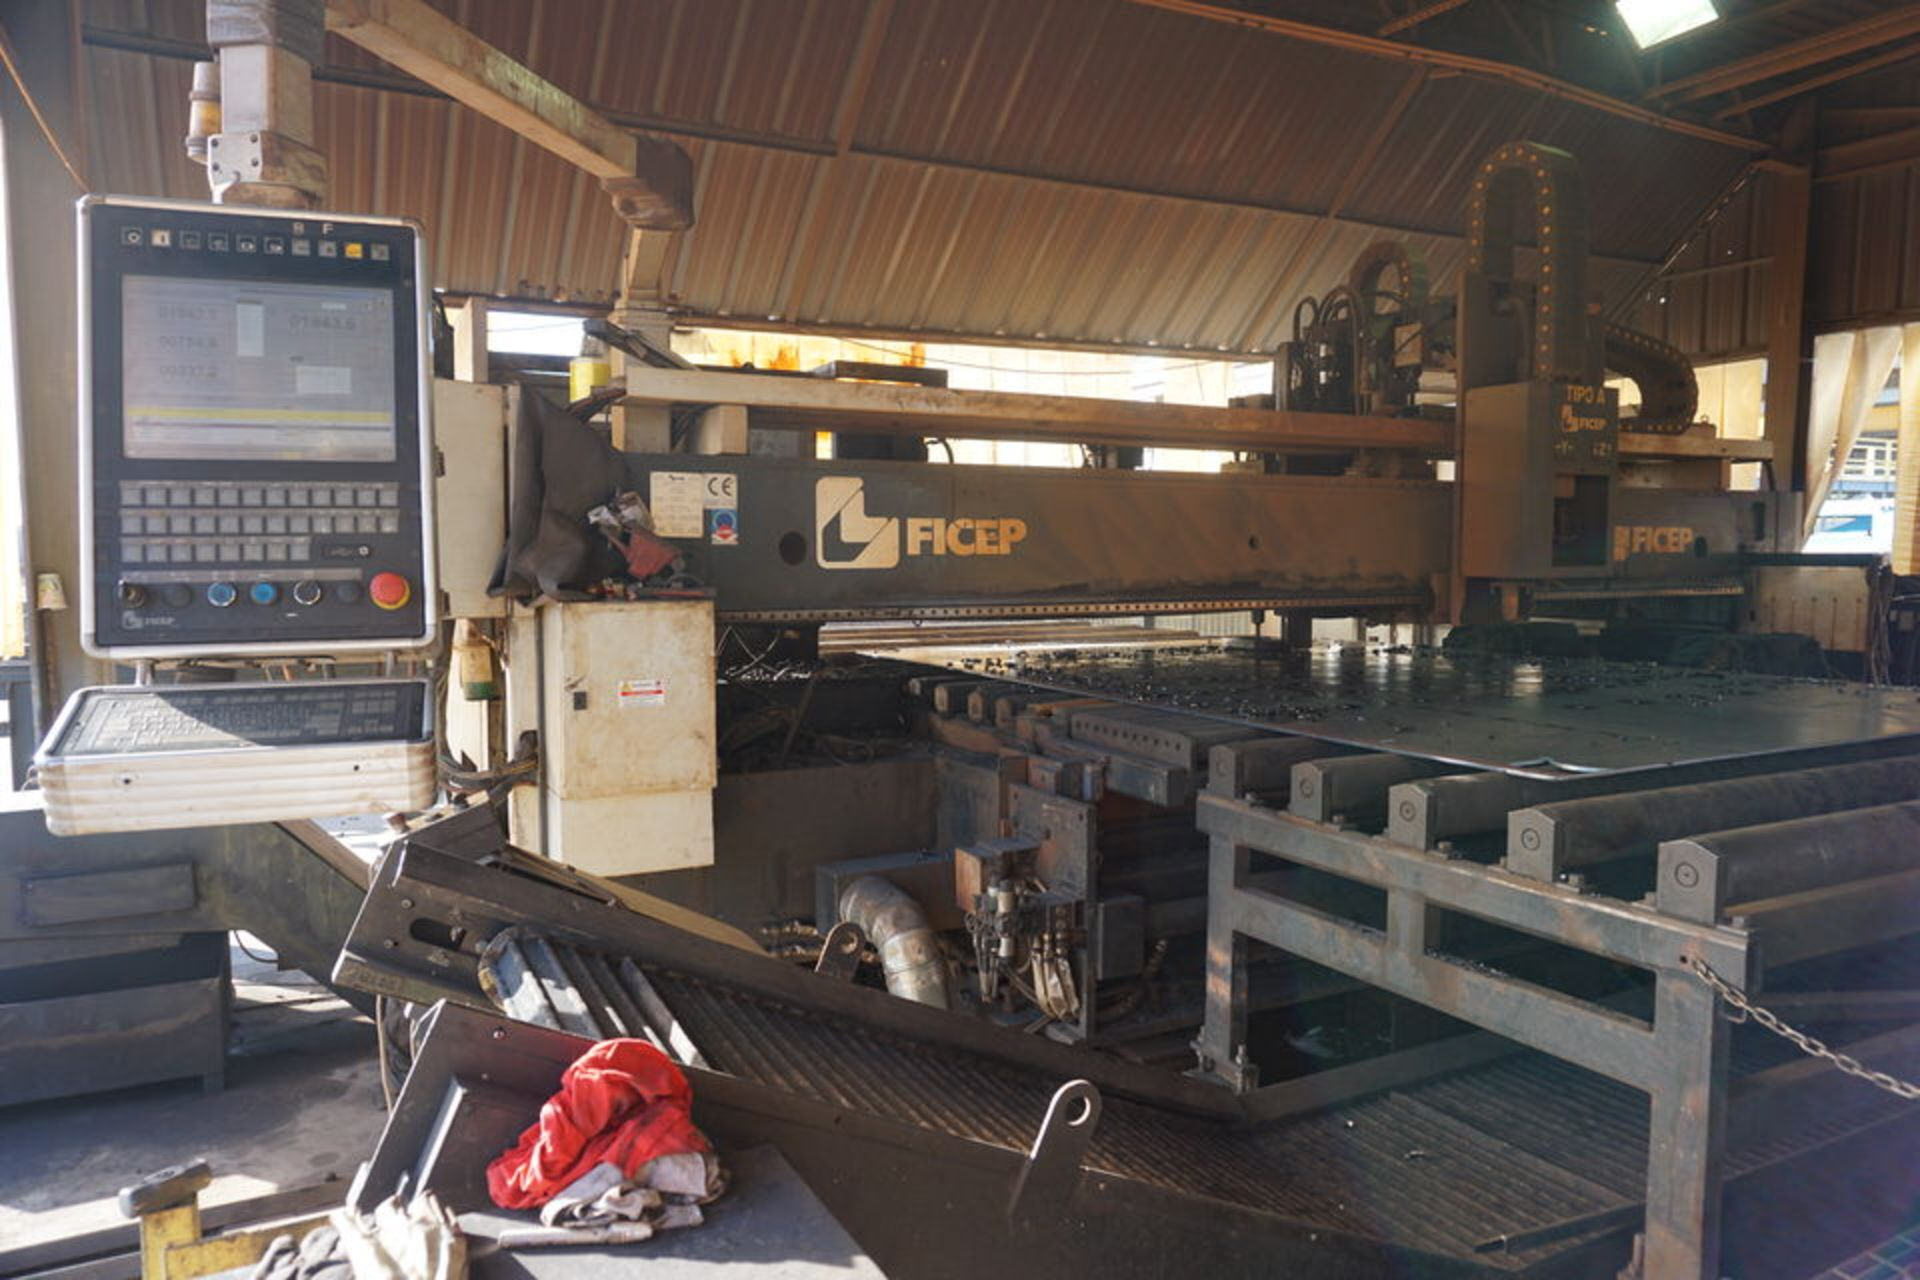 Lot 239 - 2014 Ficep Tipo A25-LG Plate Processing System